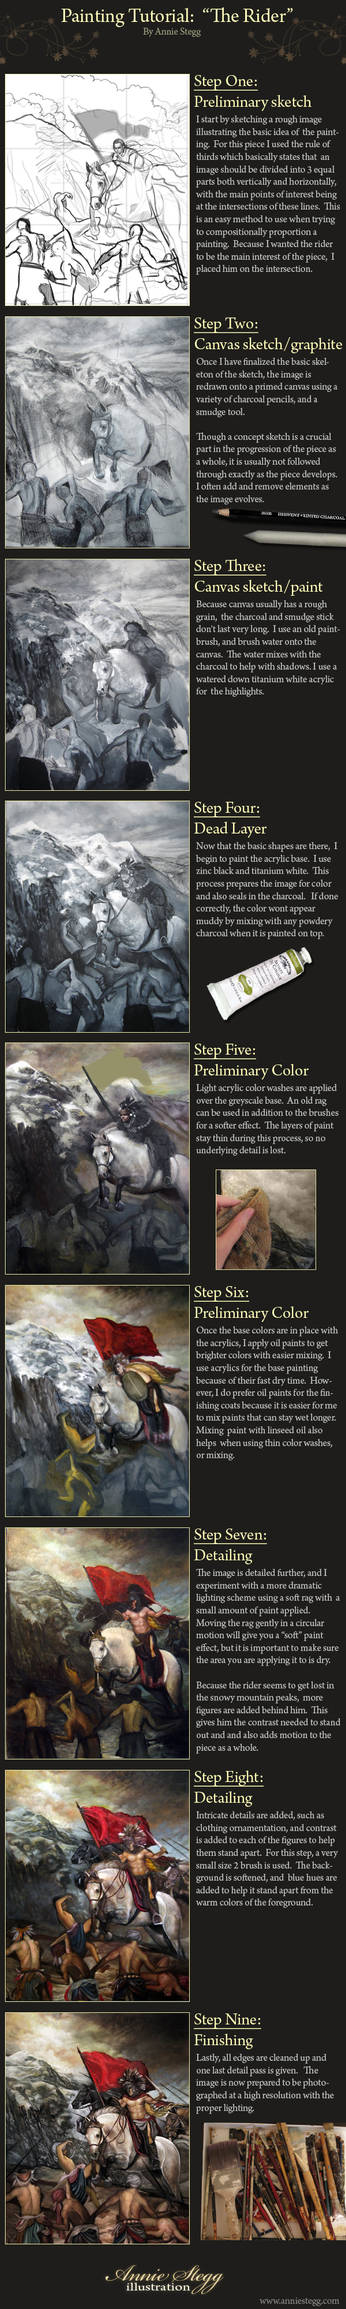 Painting Tutorial: The Rider